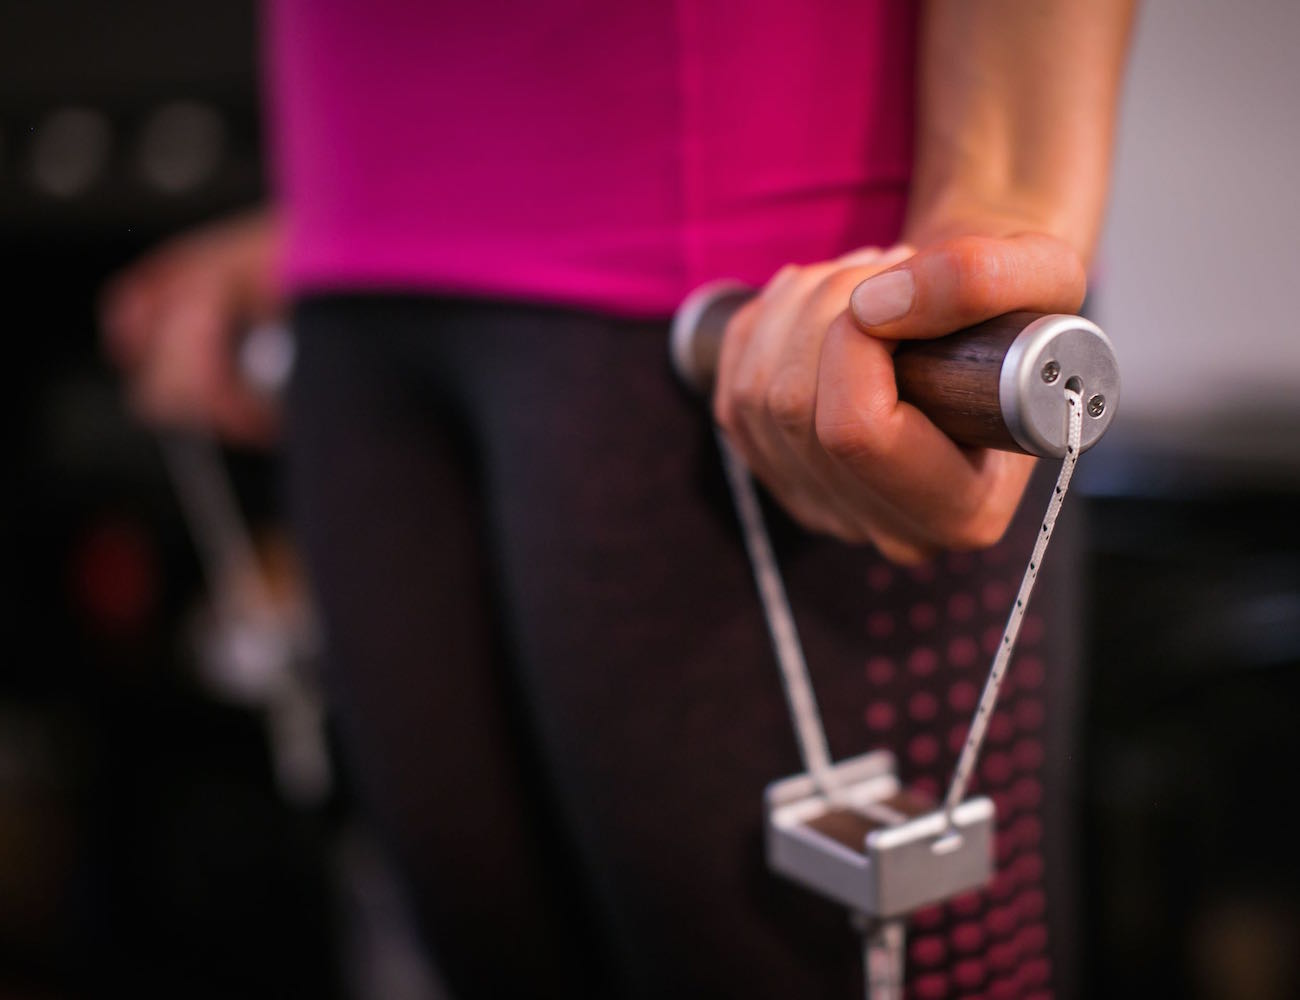 LiftUp – A Modern Resistance Band That Tracks Your Workout